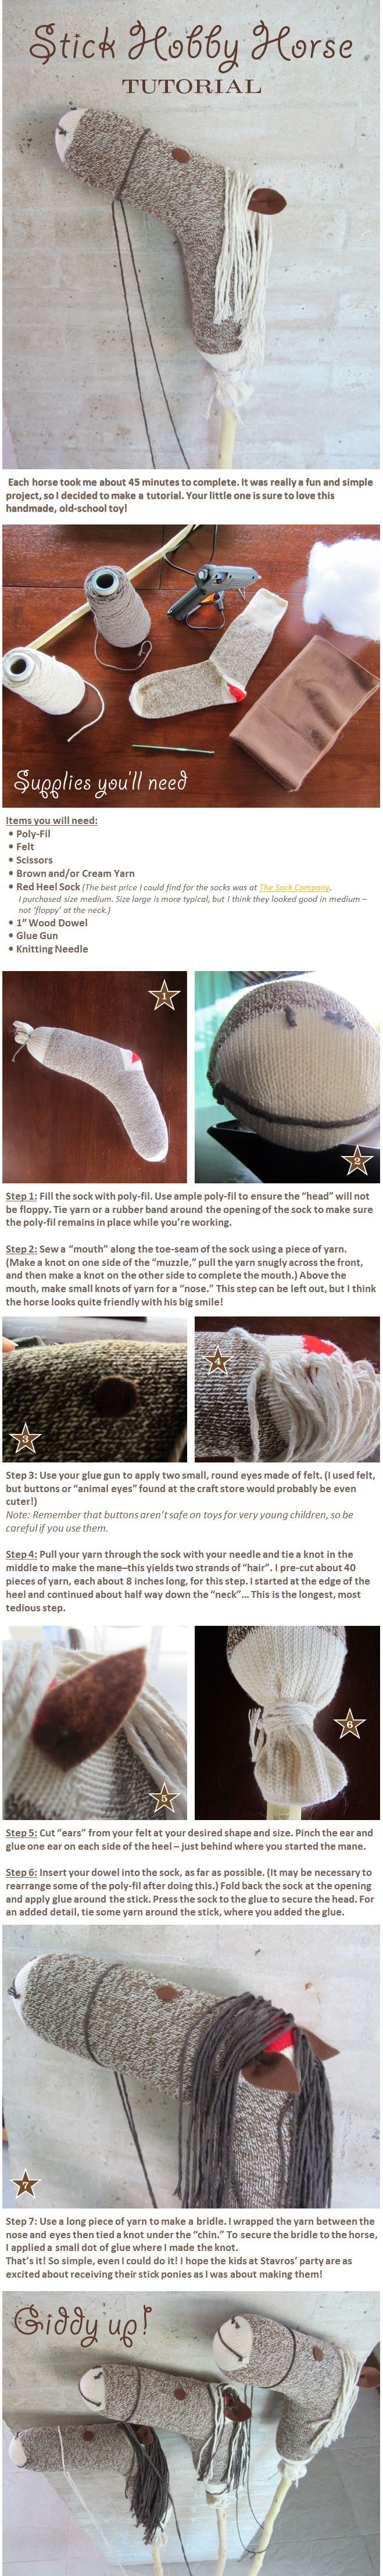 Hobby stick horse activity tutorial. Toy Story or western birthday party theme for a cowboy or cowgirl.: